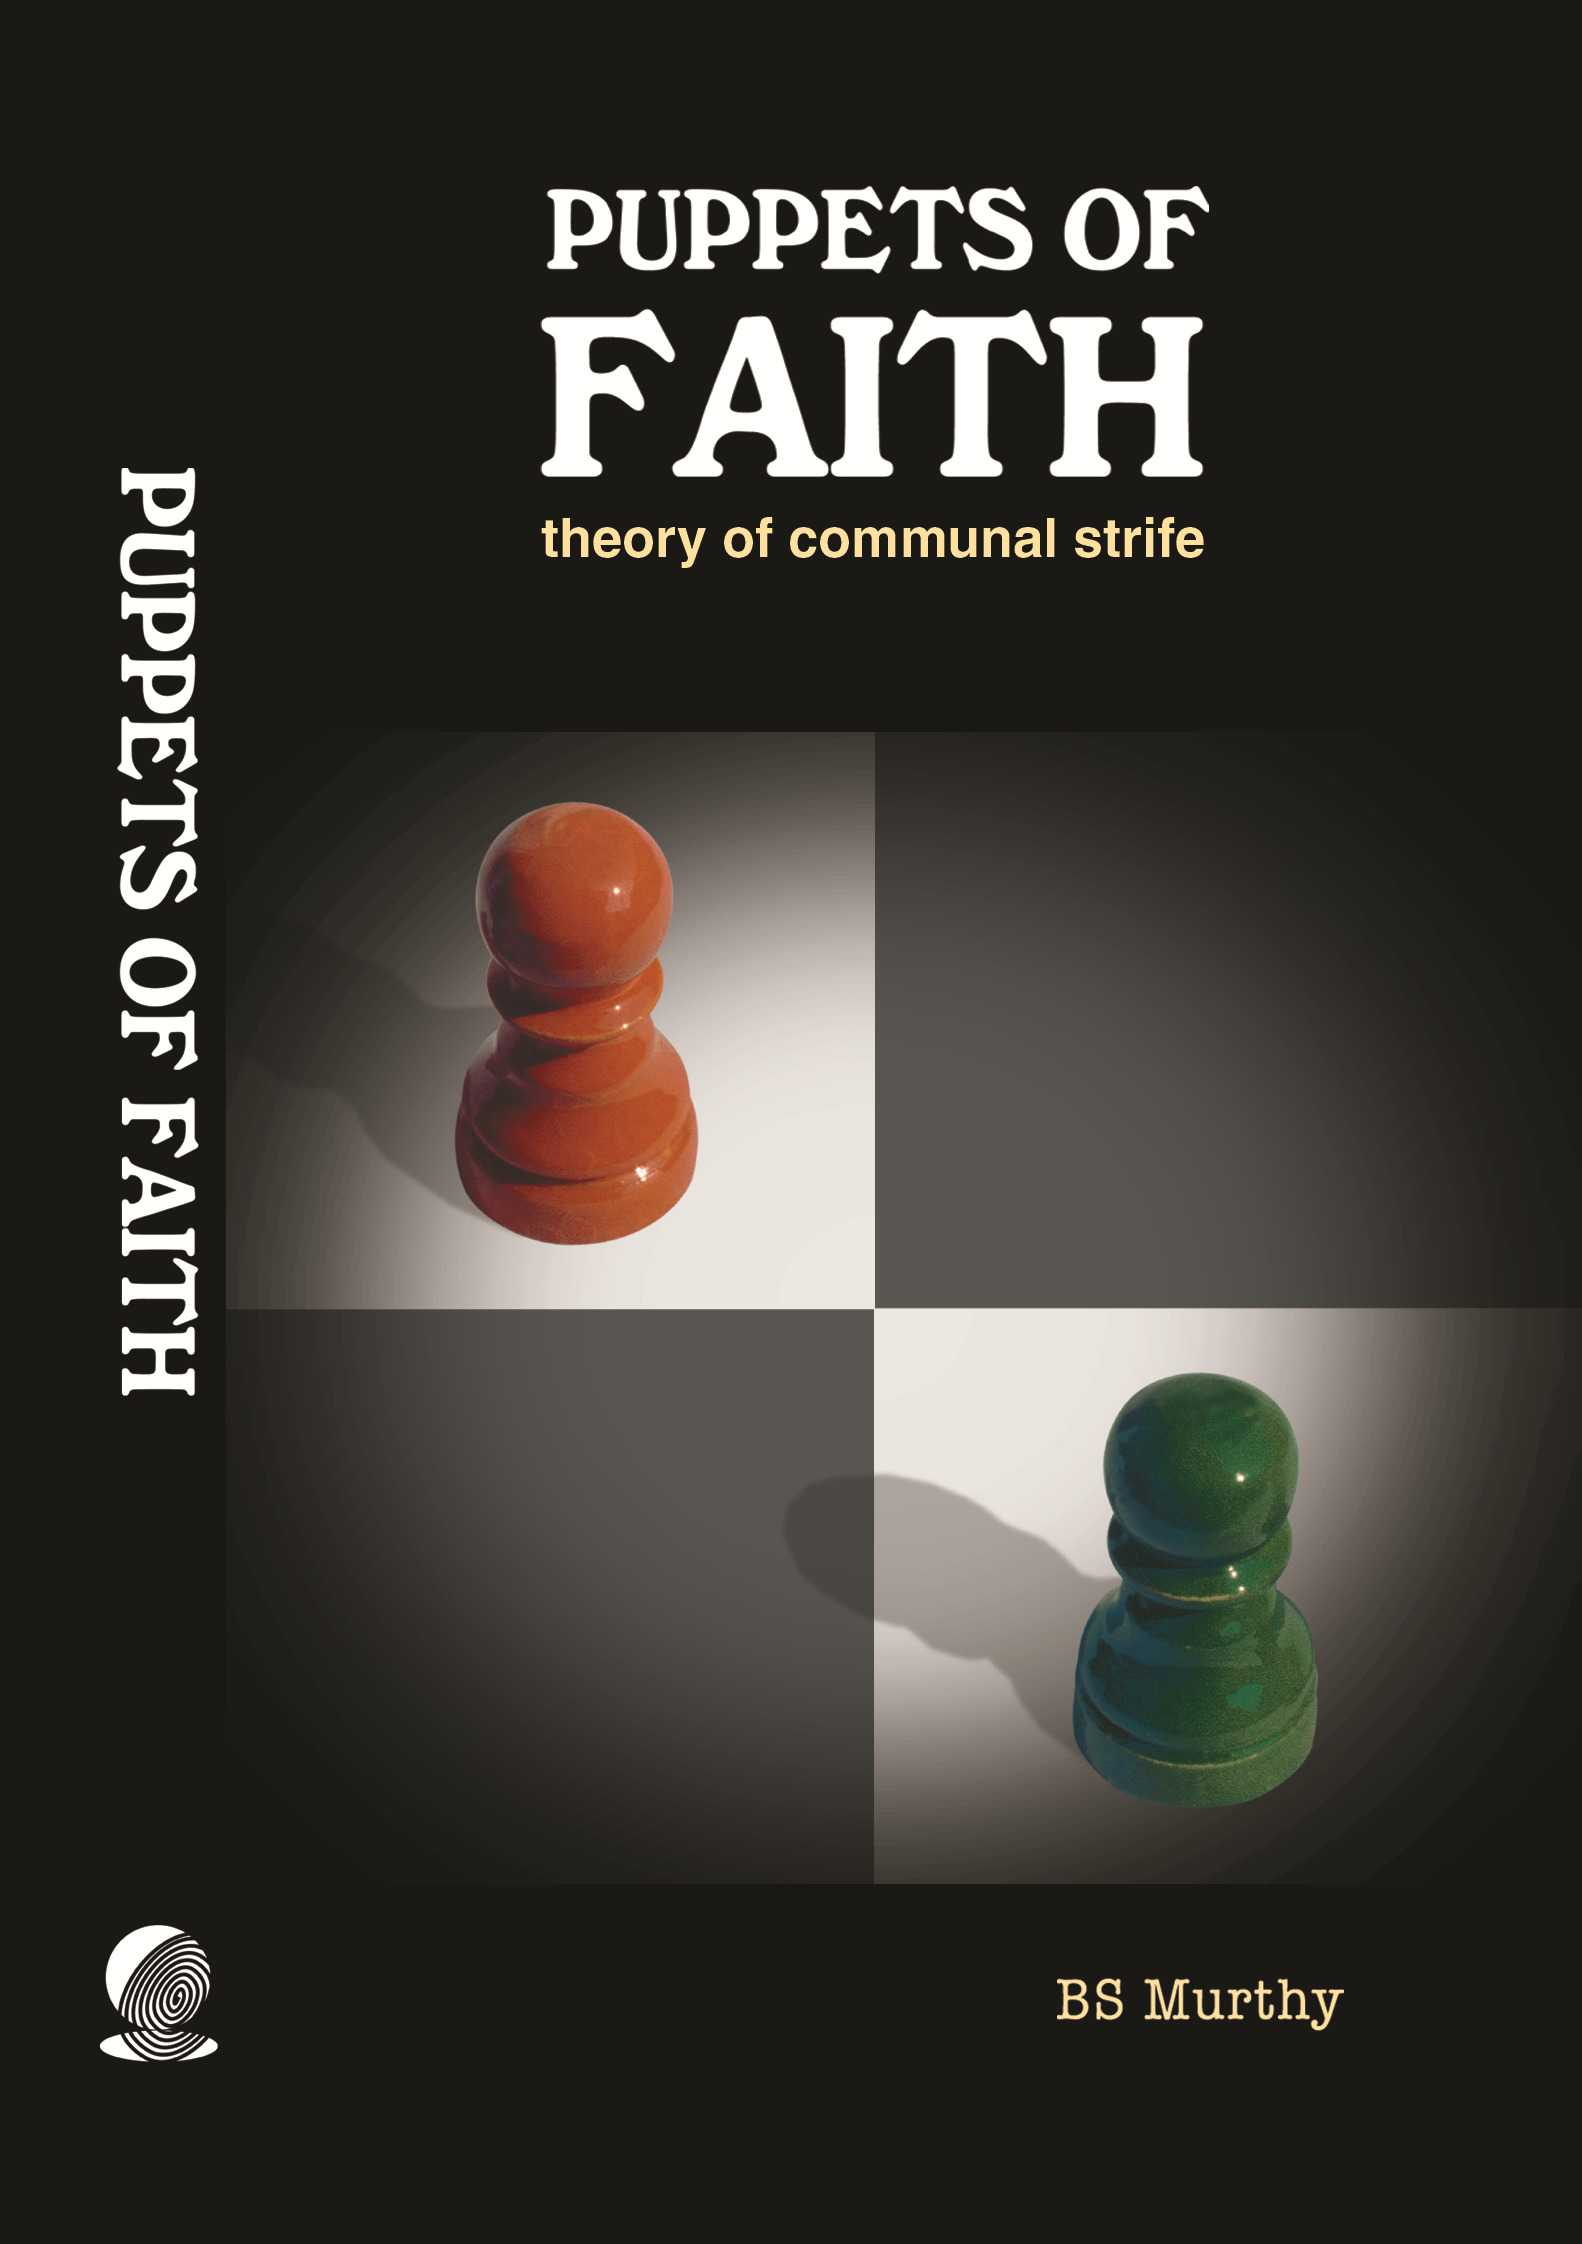 Puppets of Faith: Theory of Communal Strife  A critical appraisal of Islamic faith, Indian polity 'n more